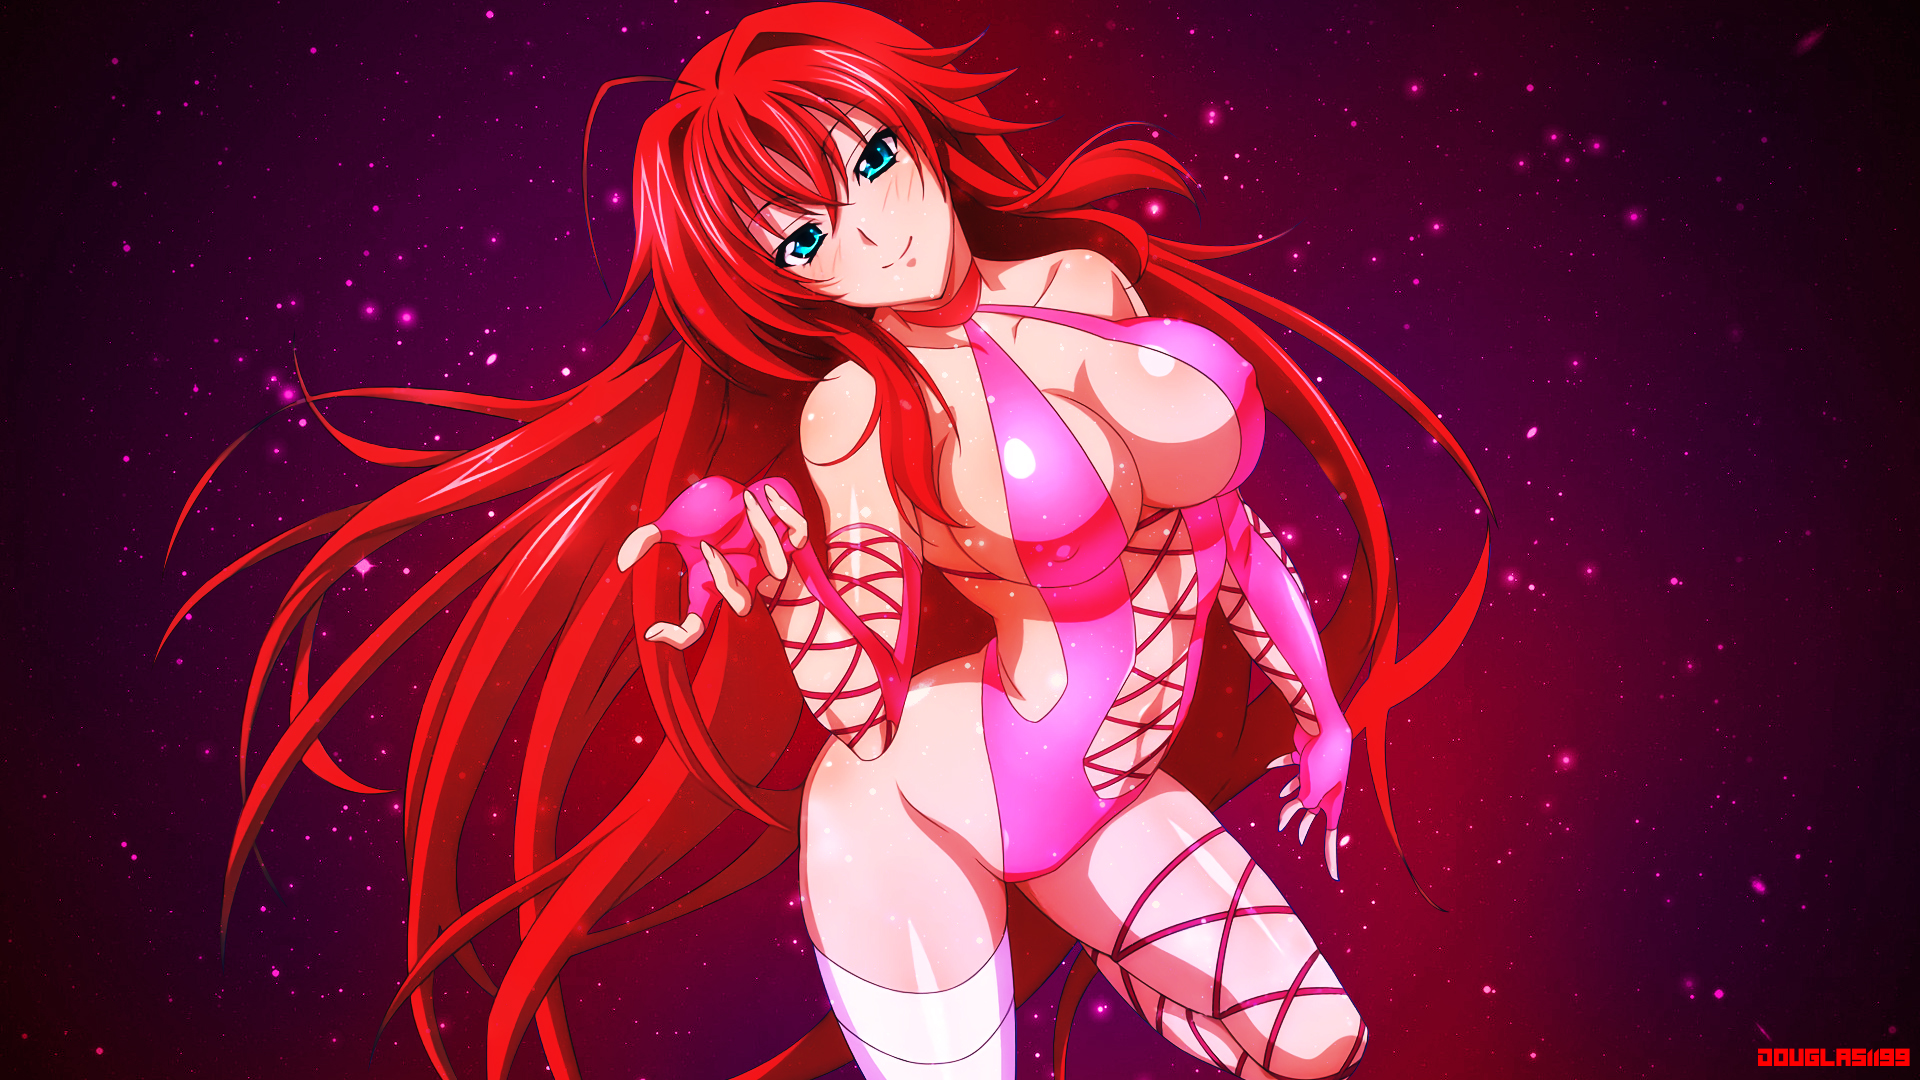 Nature Hd Wallpapers 1080p 3d Rias Gremory Wallpaper Hd Ps4wallpapers Com